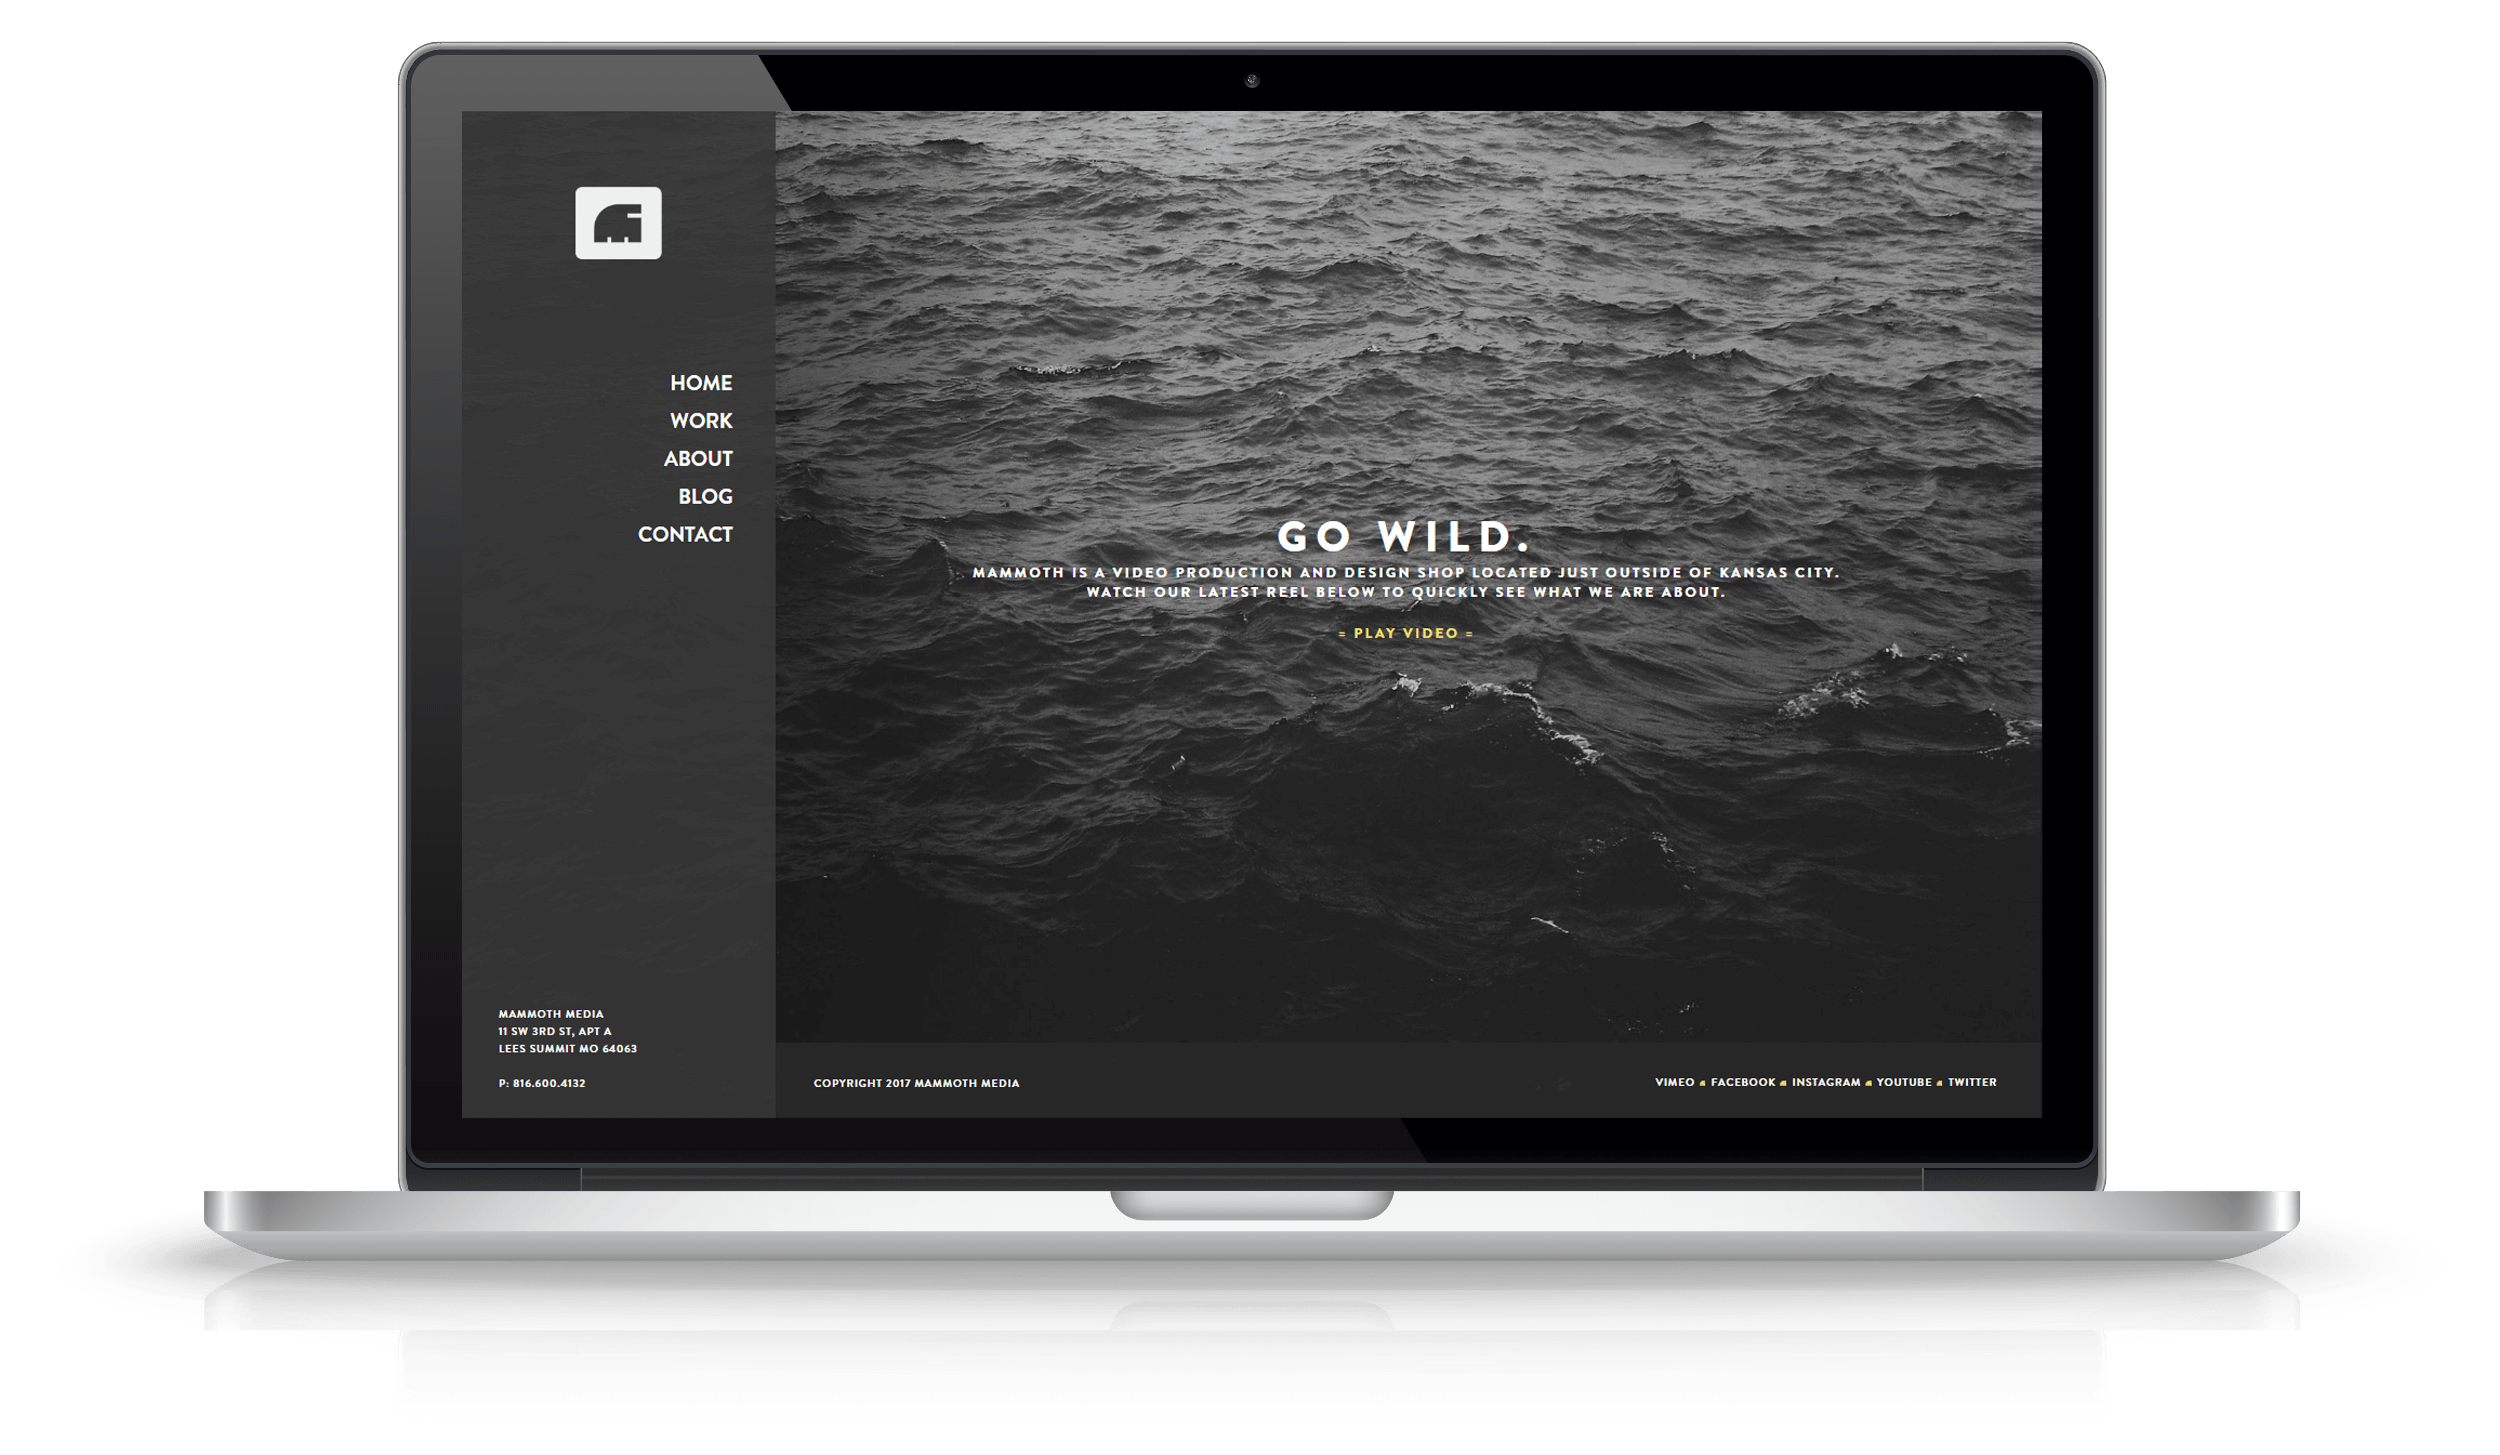 Pixelnation Project: Mammoth Media Website - Home Page